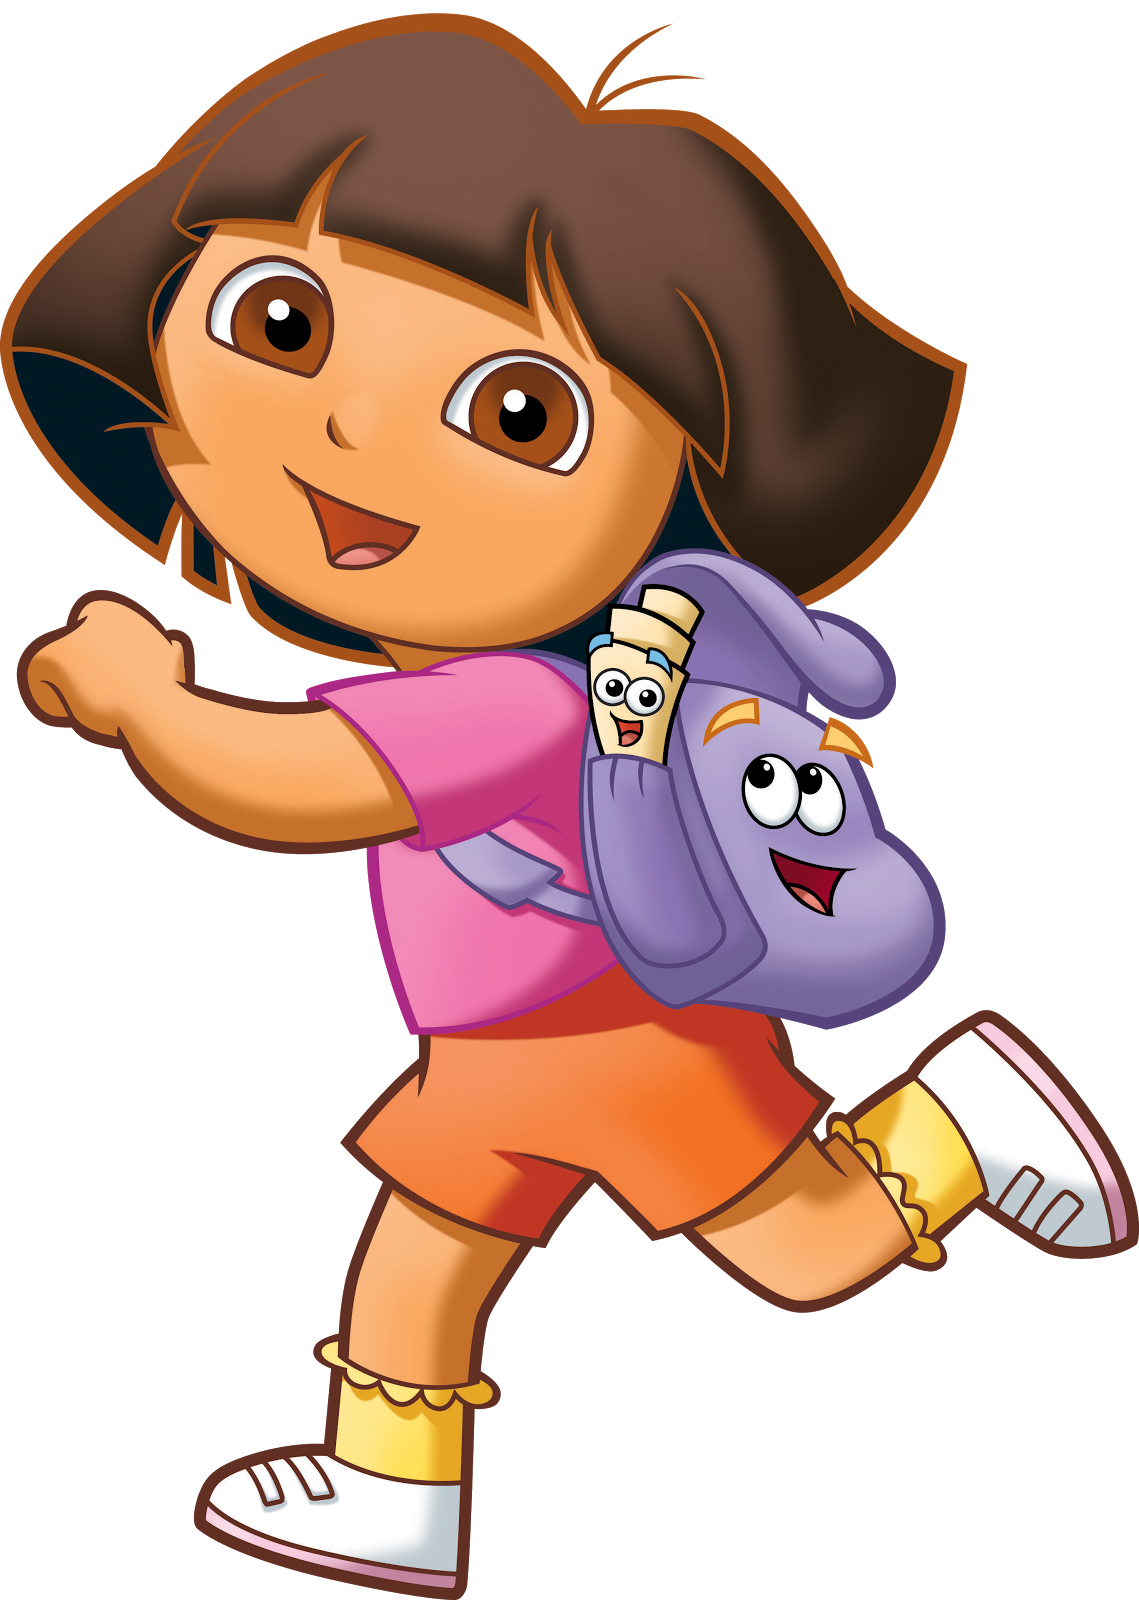 Cartoon characters png. Dora the explorer pack